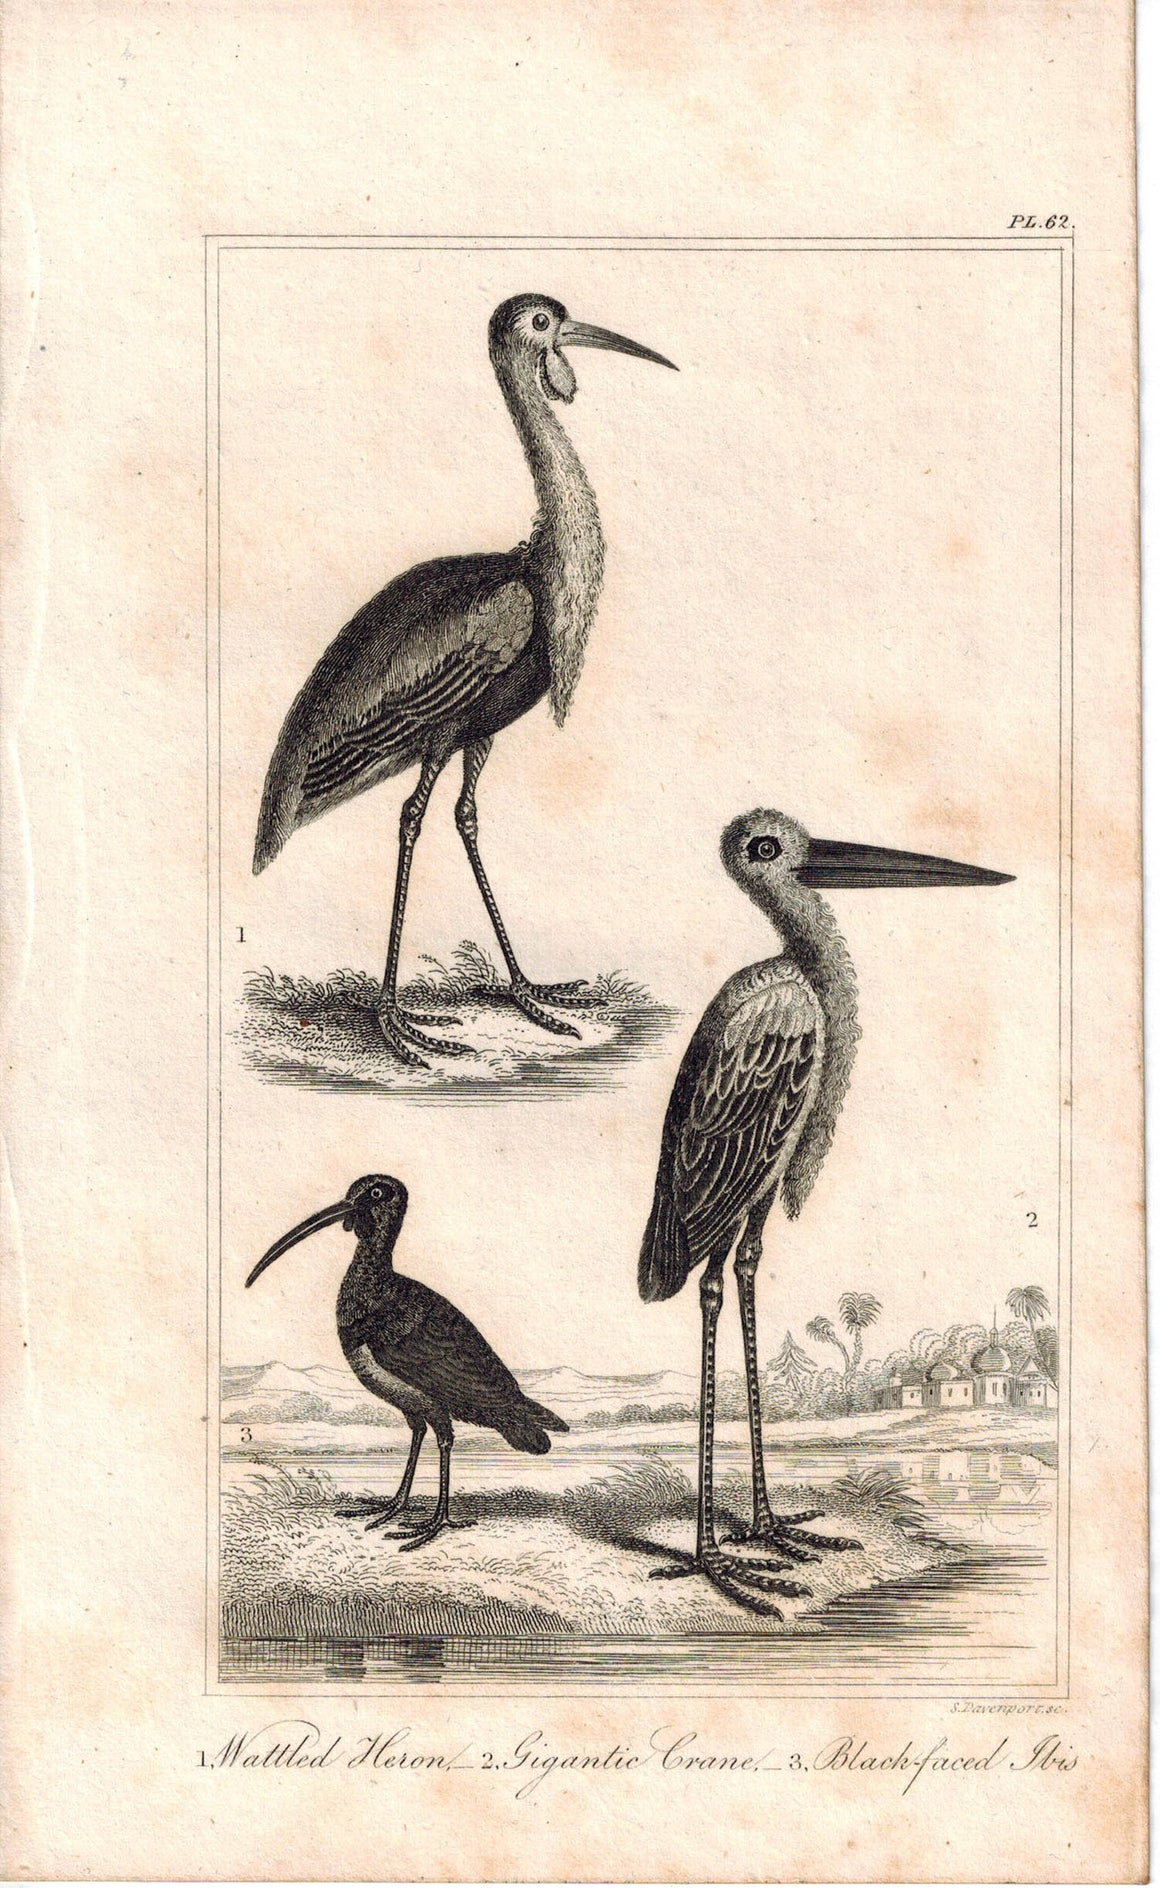 Wattled Heron, Gigantic Crane, Black-faced Ibis 1821 Antique Bird Engraved Print